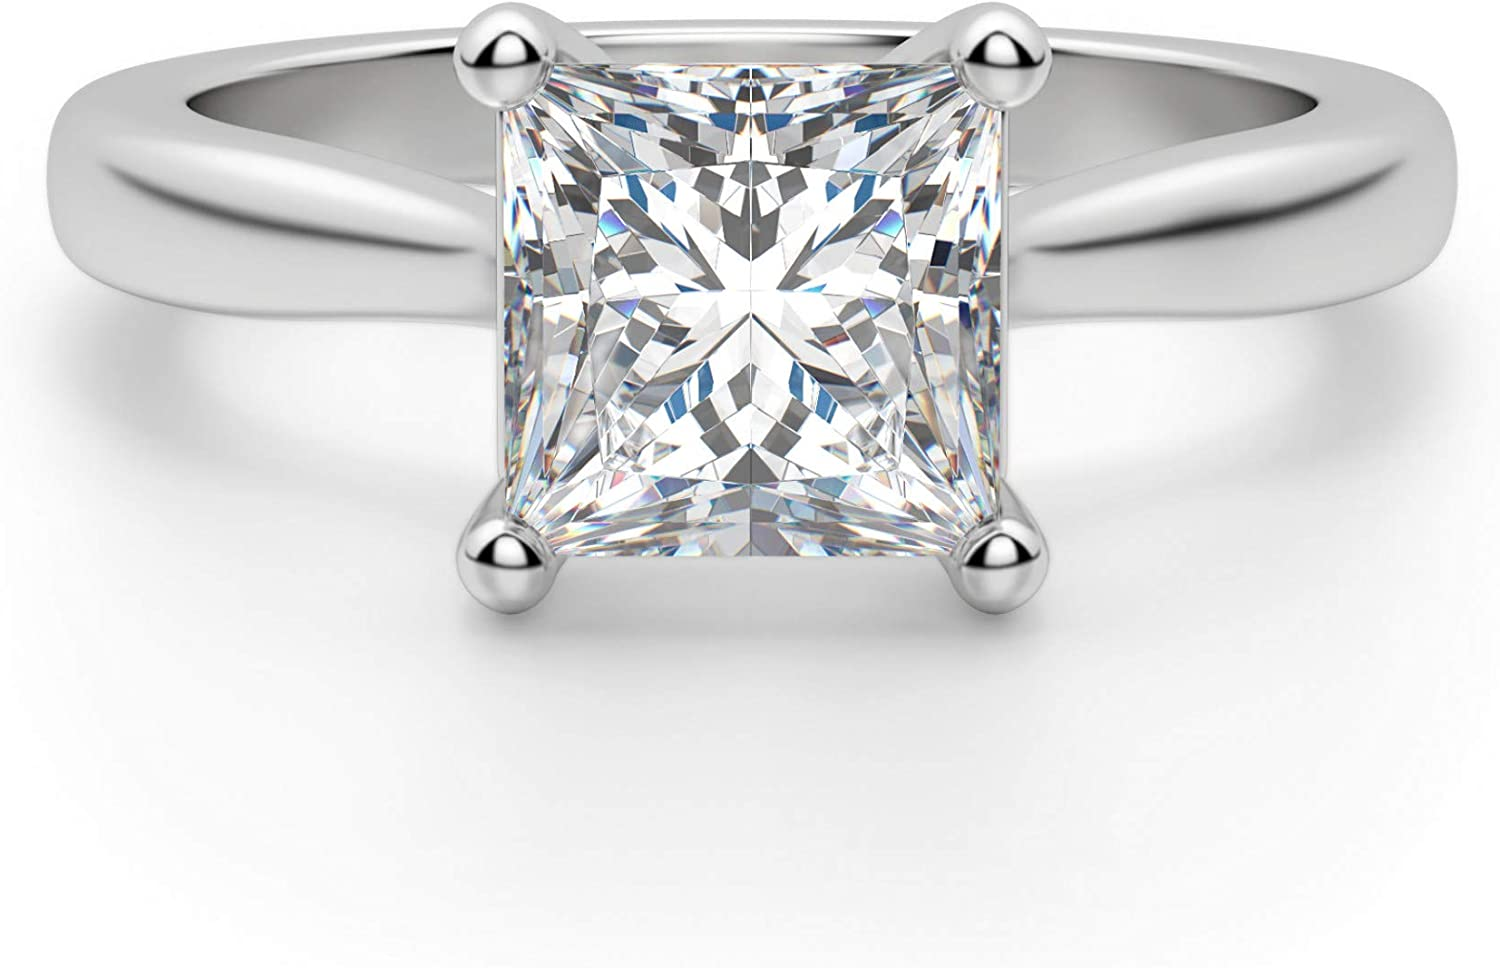 2CT Princess Cut Colorless Moissanite Challenge the lowest price of Japan ☆ Popular shop is the lowest price challenge Br Ring Wedding Engagement